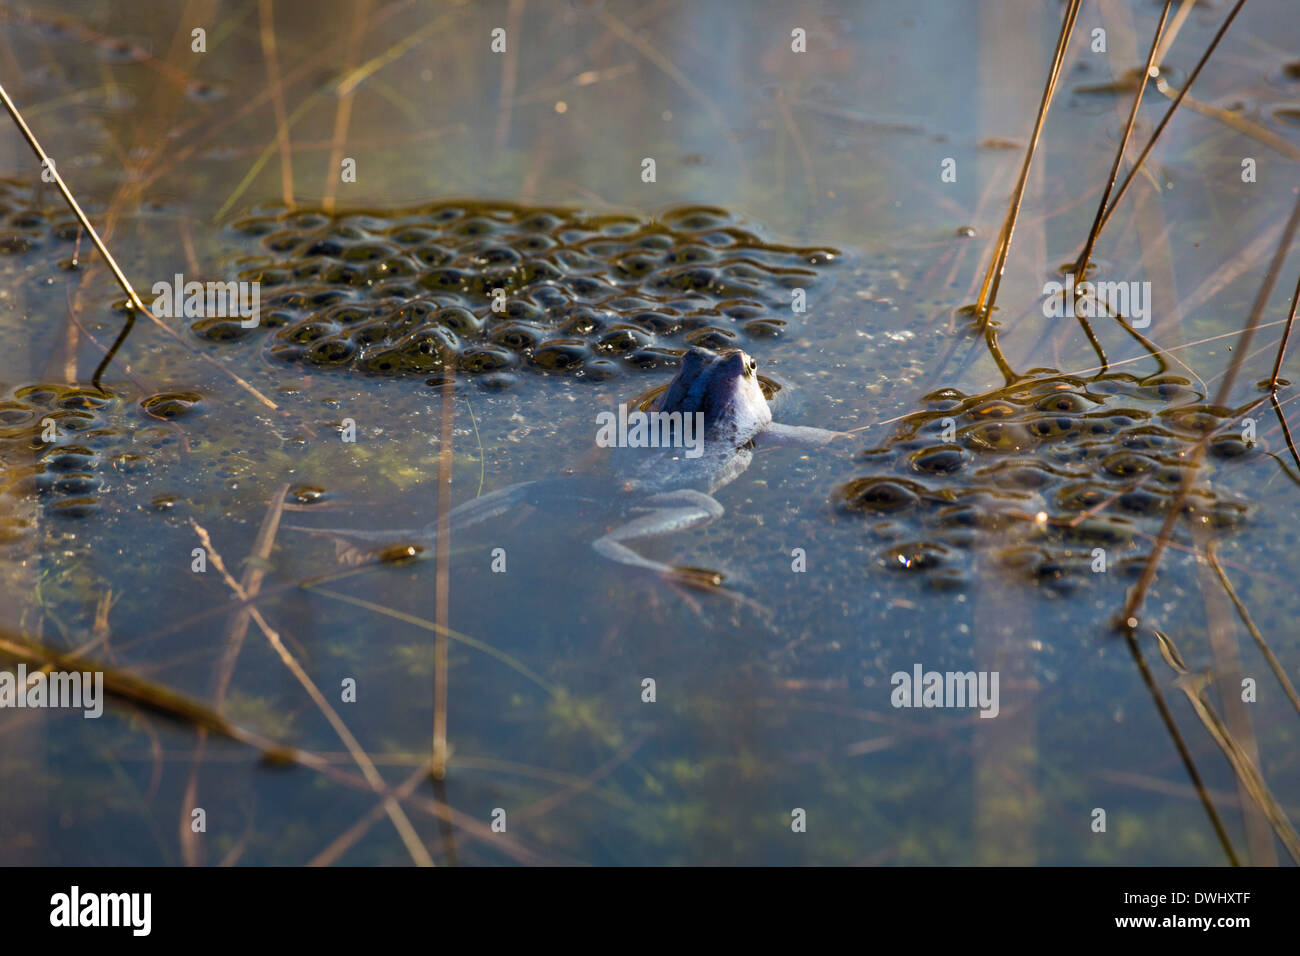 Moor frog (Rana arvalis) swimming in the neighborhood of spawn in a lake. Male moor frogs turn blue during the mating season. - Stock Image